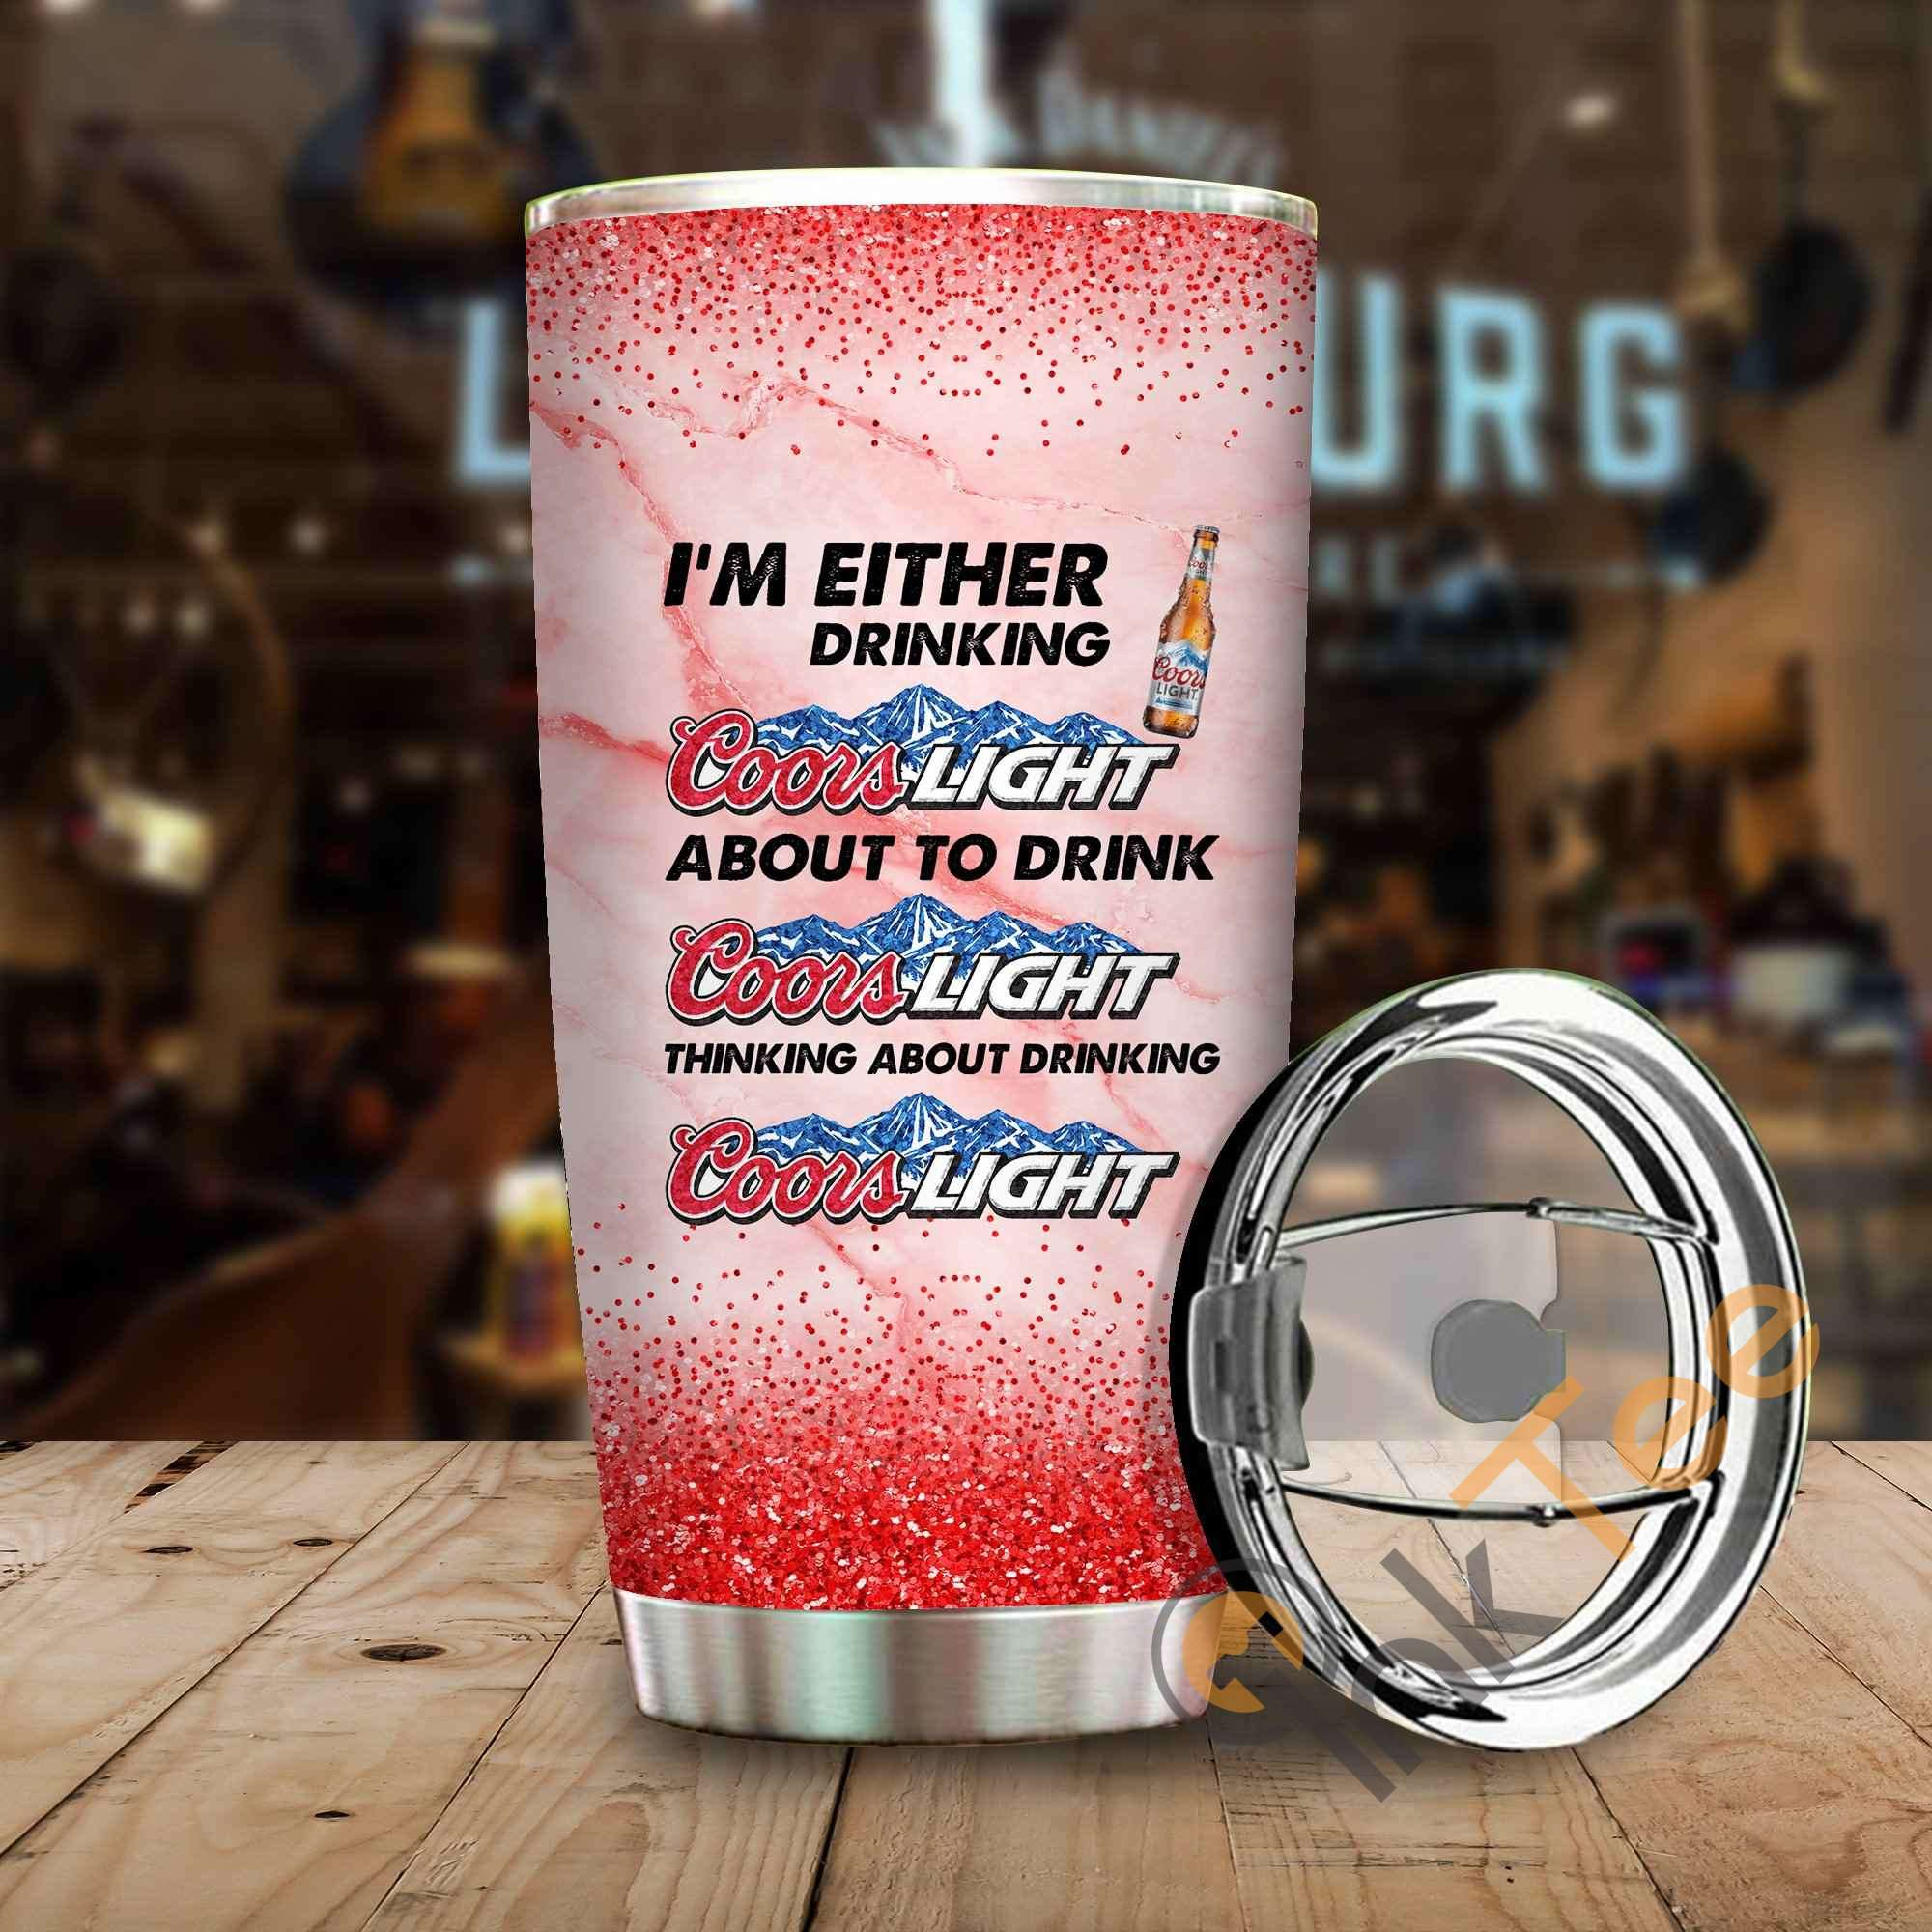 Im Either Drinking Coors Light Amazon Best Seller Sku 3901 Stainless Steel Tumbler